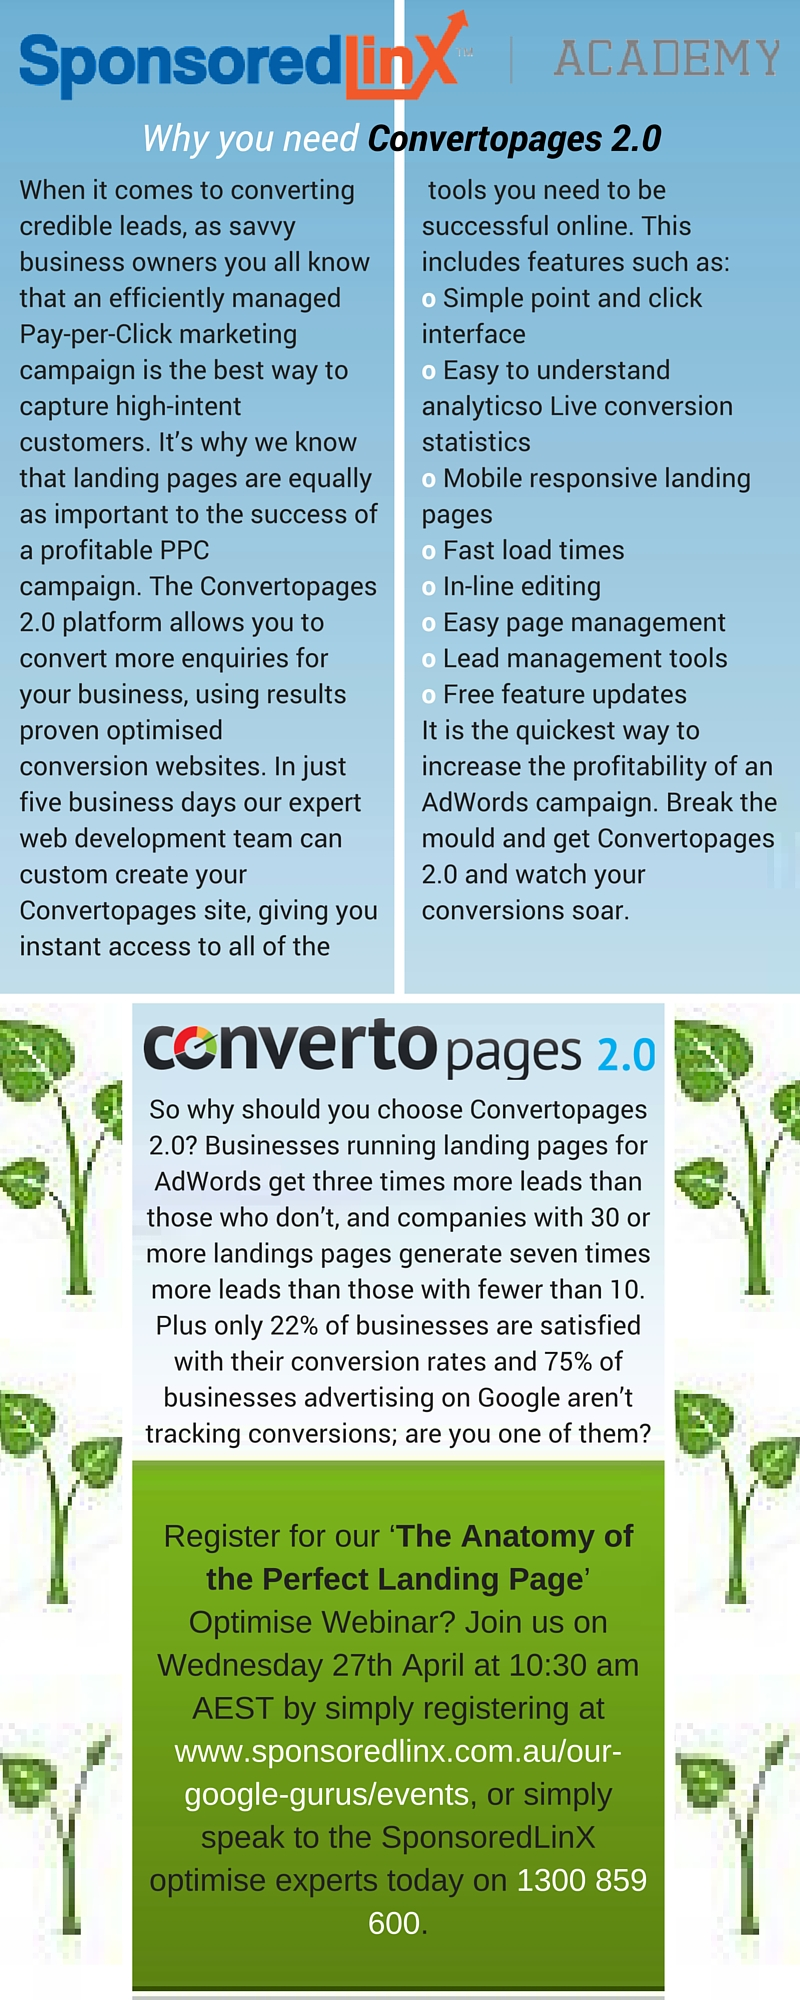 Why you need Convertopages 2.0 Infographic #4